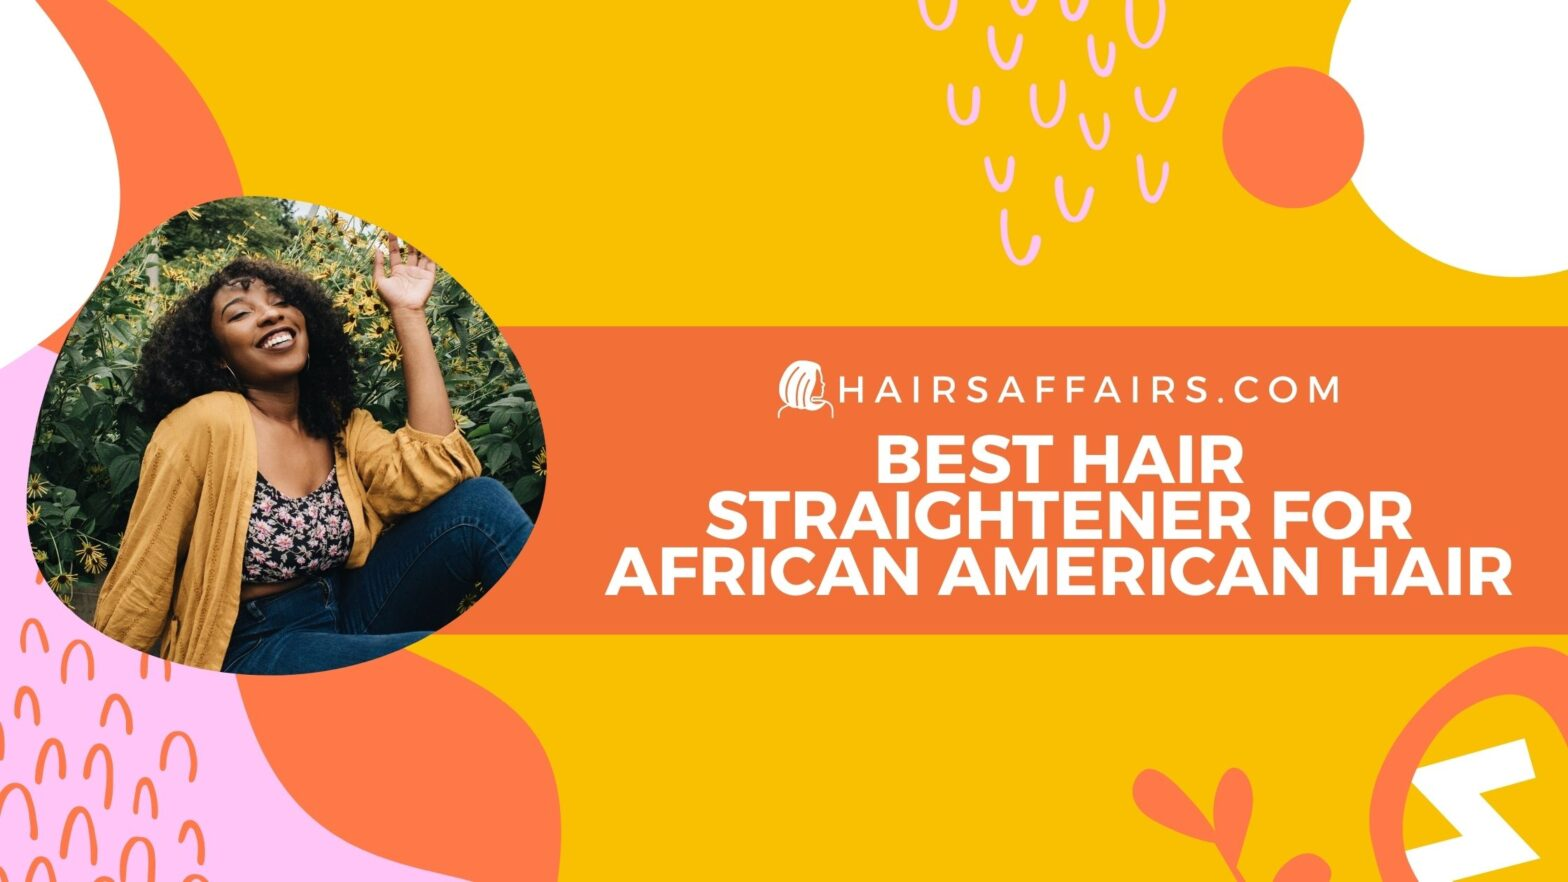 HA-Best-hair-straightener-for-african-american-hair